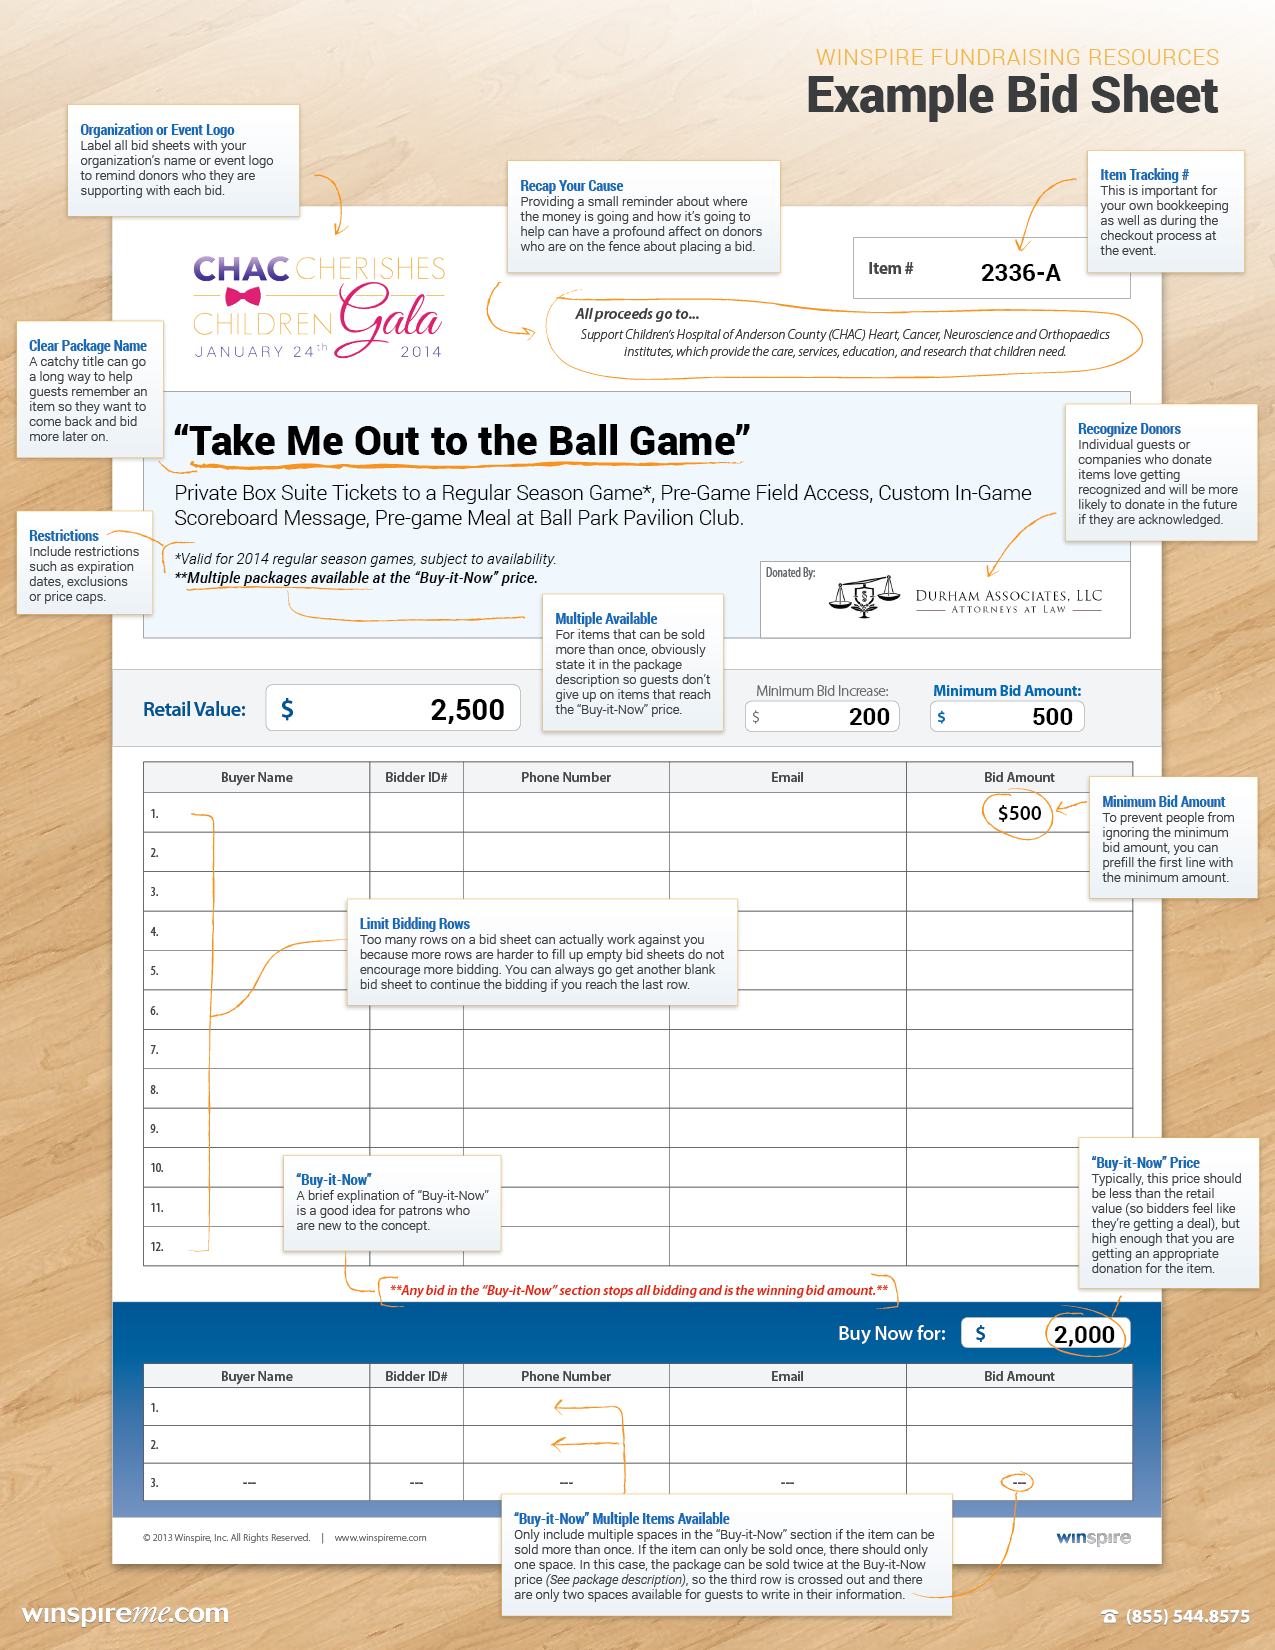 Lawn Care Pricing Spreadsheet Spreadshee Lawn Care Pricing Spreadsheet